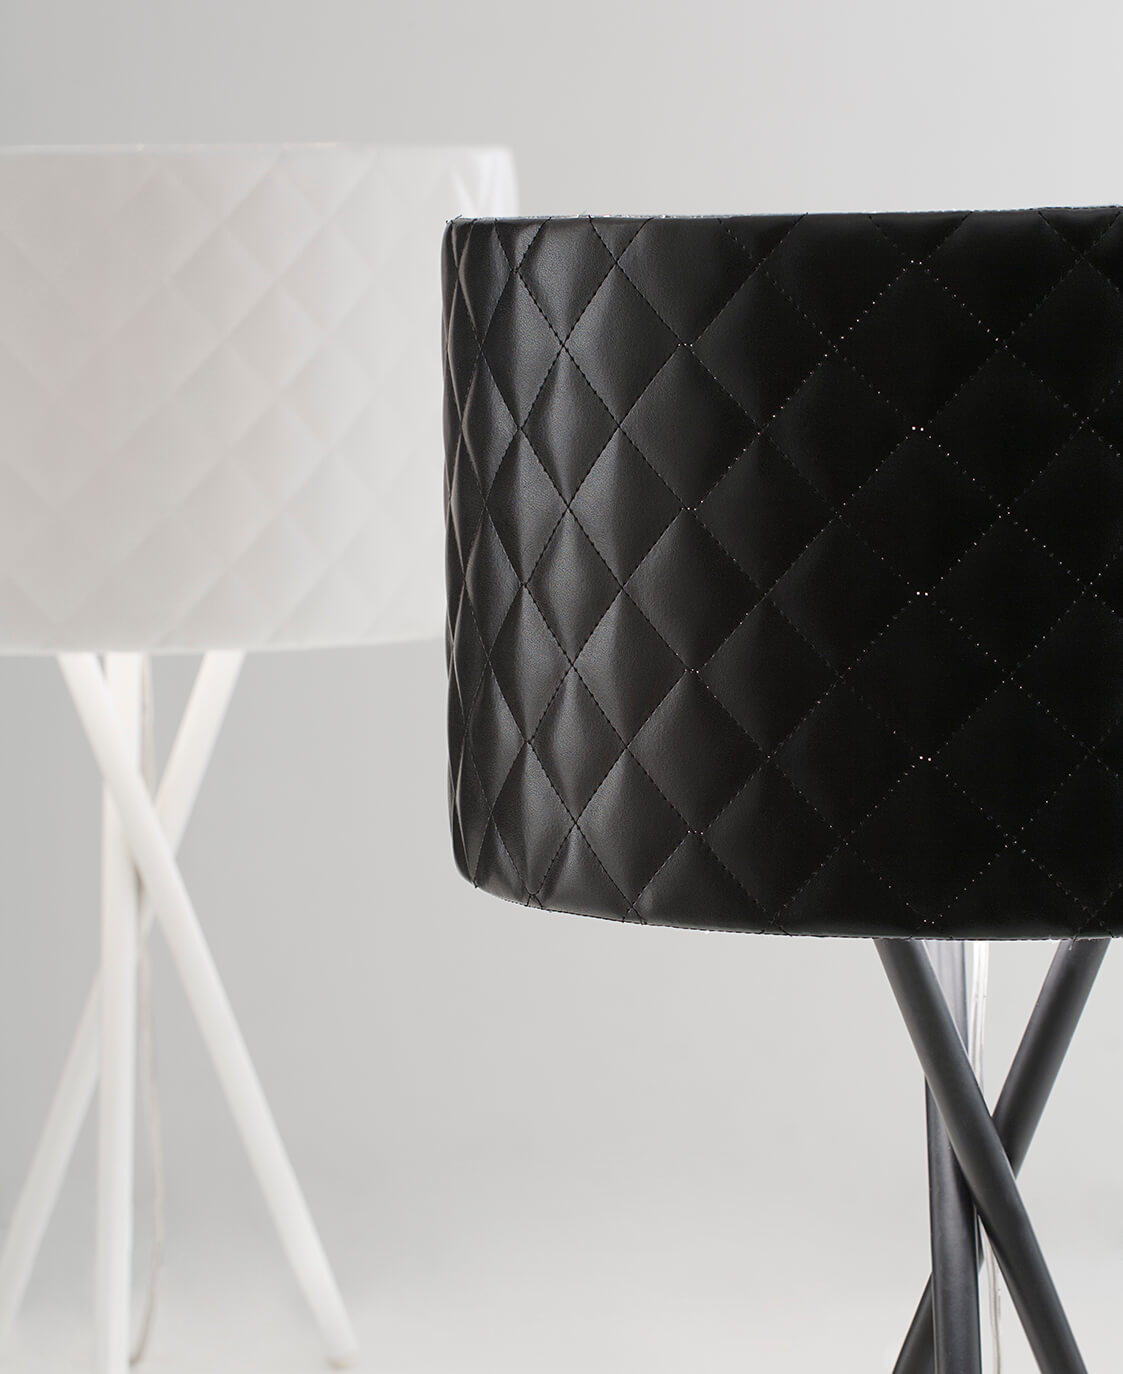 mariutable3gallery.jpg